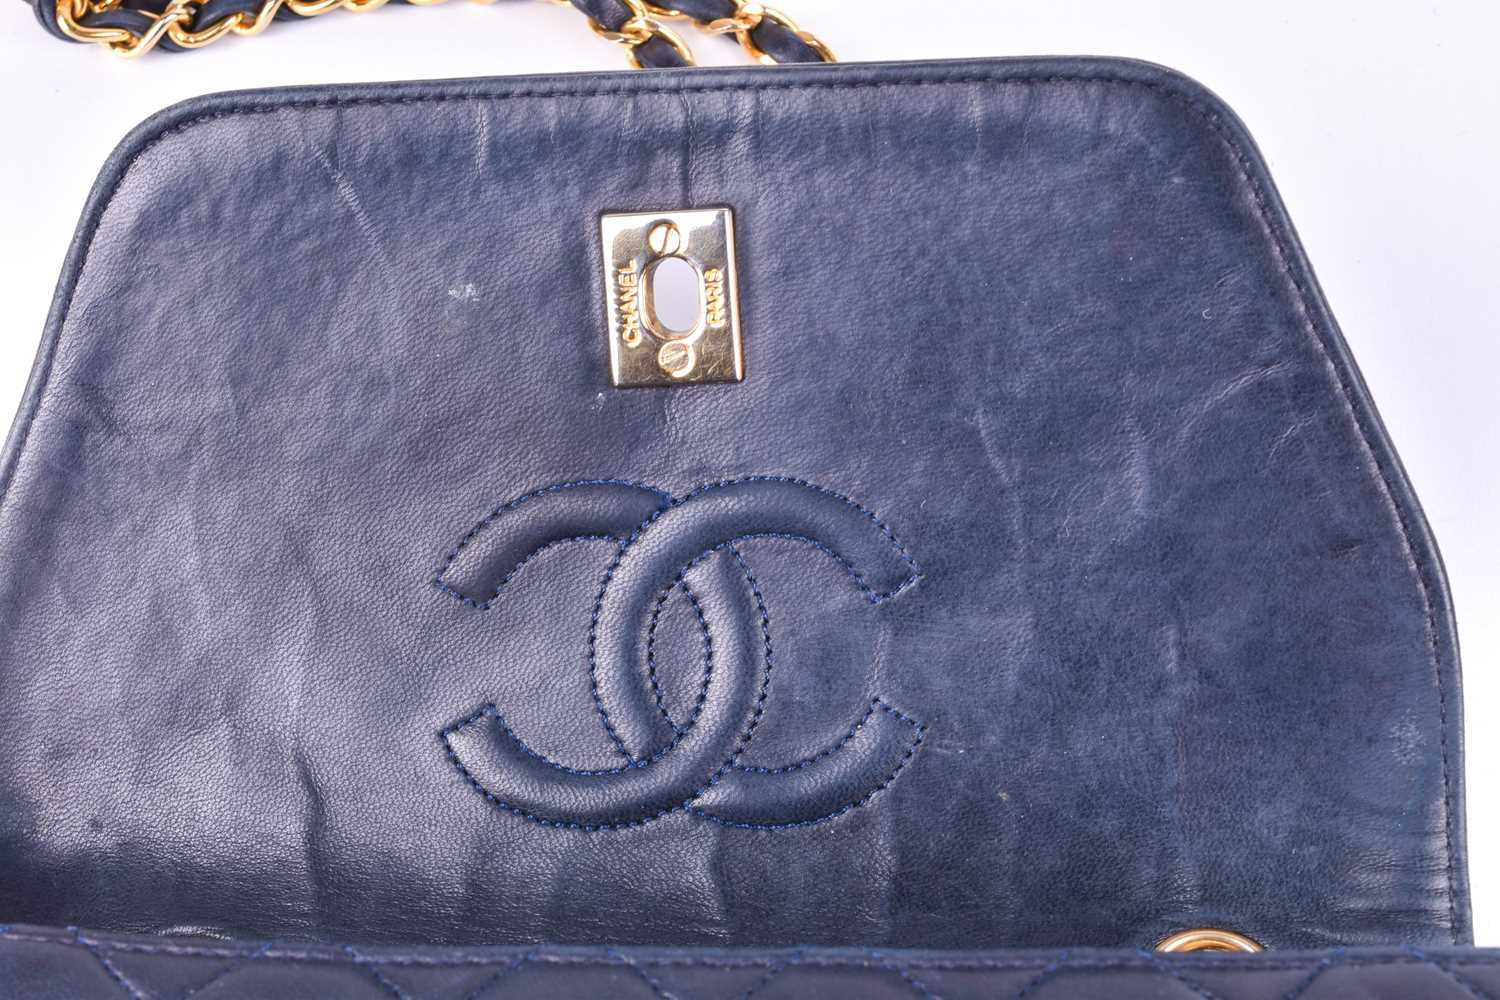 Chanel. A classic quilted leather handbag, of tapered square design, with gold tone CC logo clasp, - Image 4 of 26